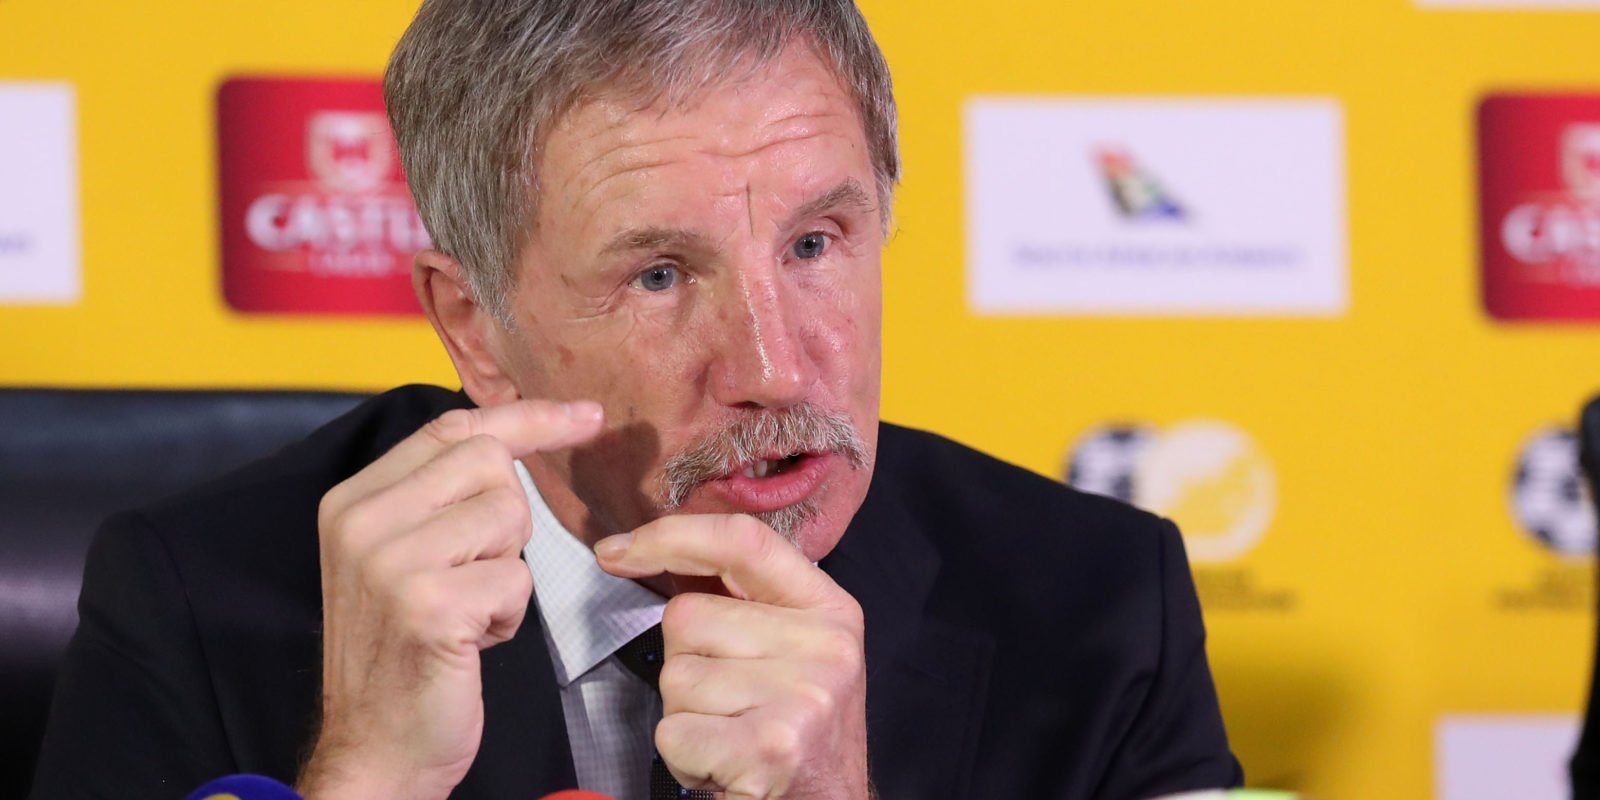 Stuart Baxter - AFCON 2019: South African coach sends message to Nigeria's Super Eagles, replies Rohr